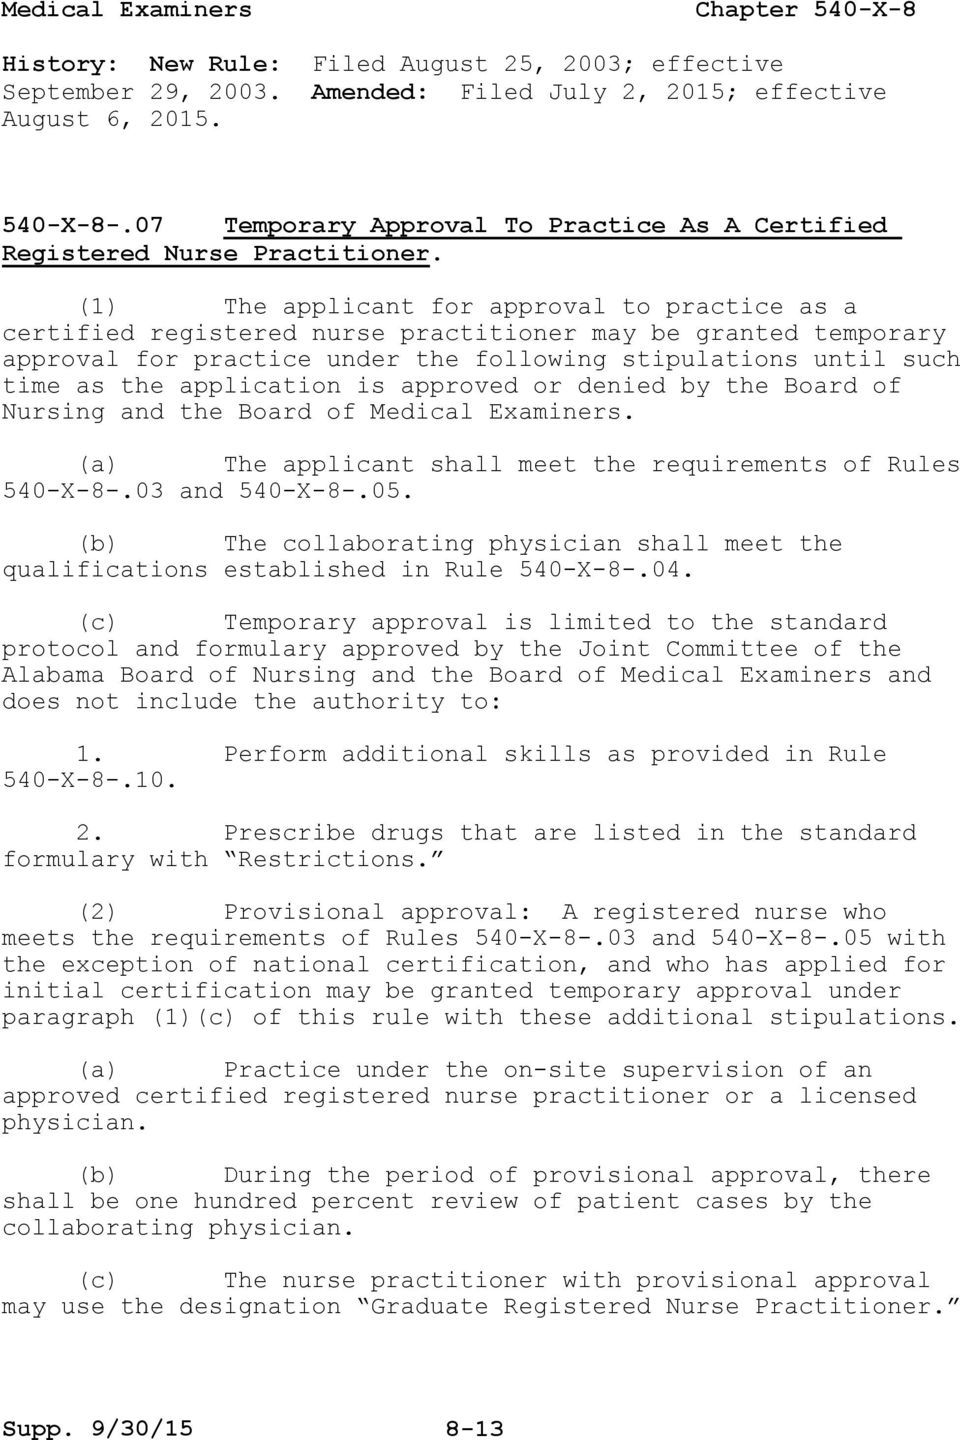 (1) The applicant for approval to practice as a certified registered nurse practitioner may be granted temporary approval for practice under the following stipulations until such time as the